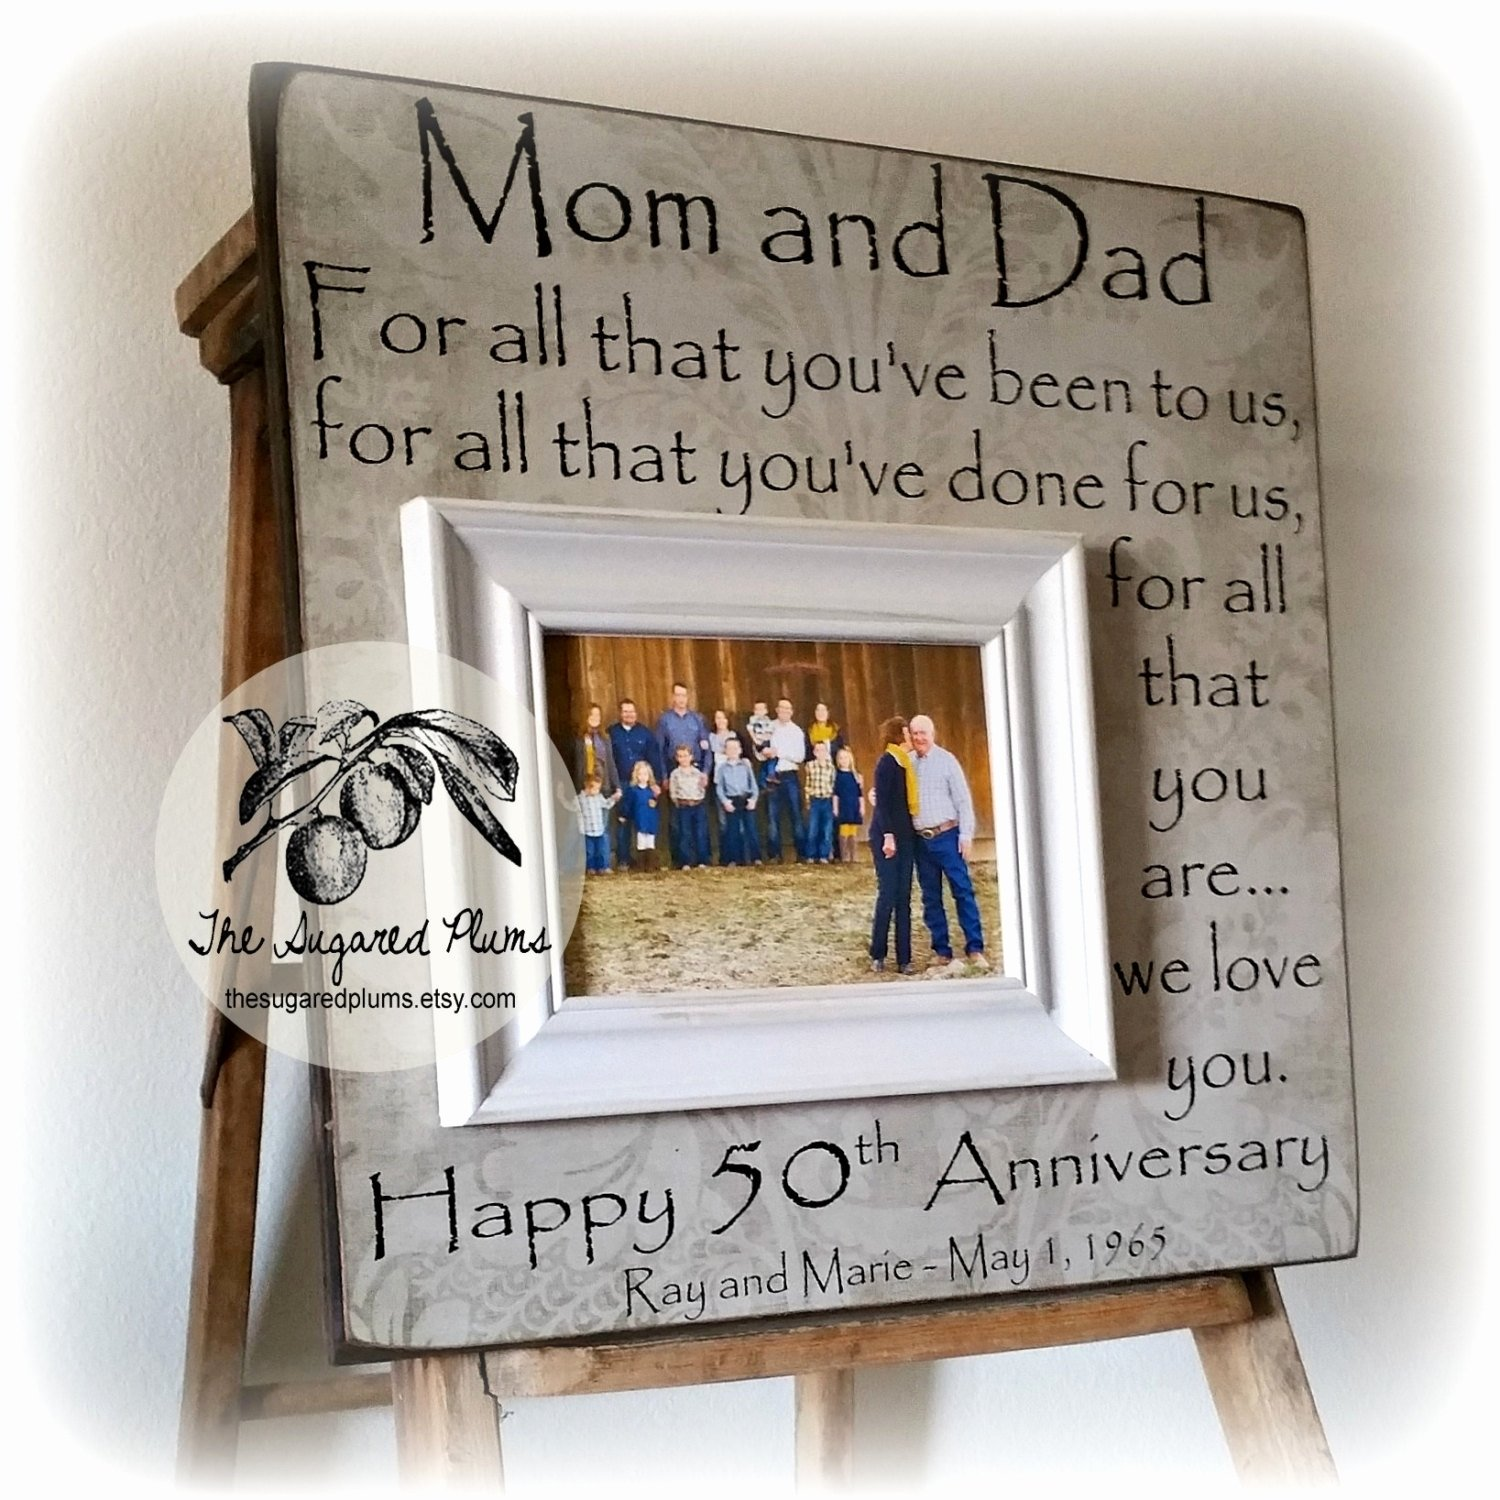 10 Fabulous Wedding Anniversary Gift Ideas For Parents 25th wedding anniversary gift ideas for couples new 50th anniversary 5